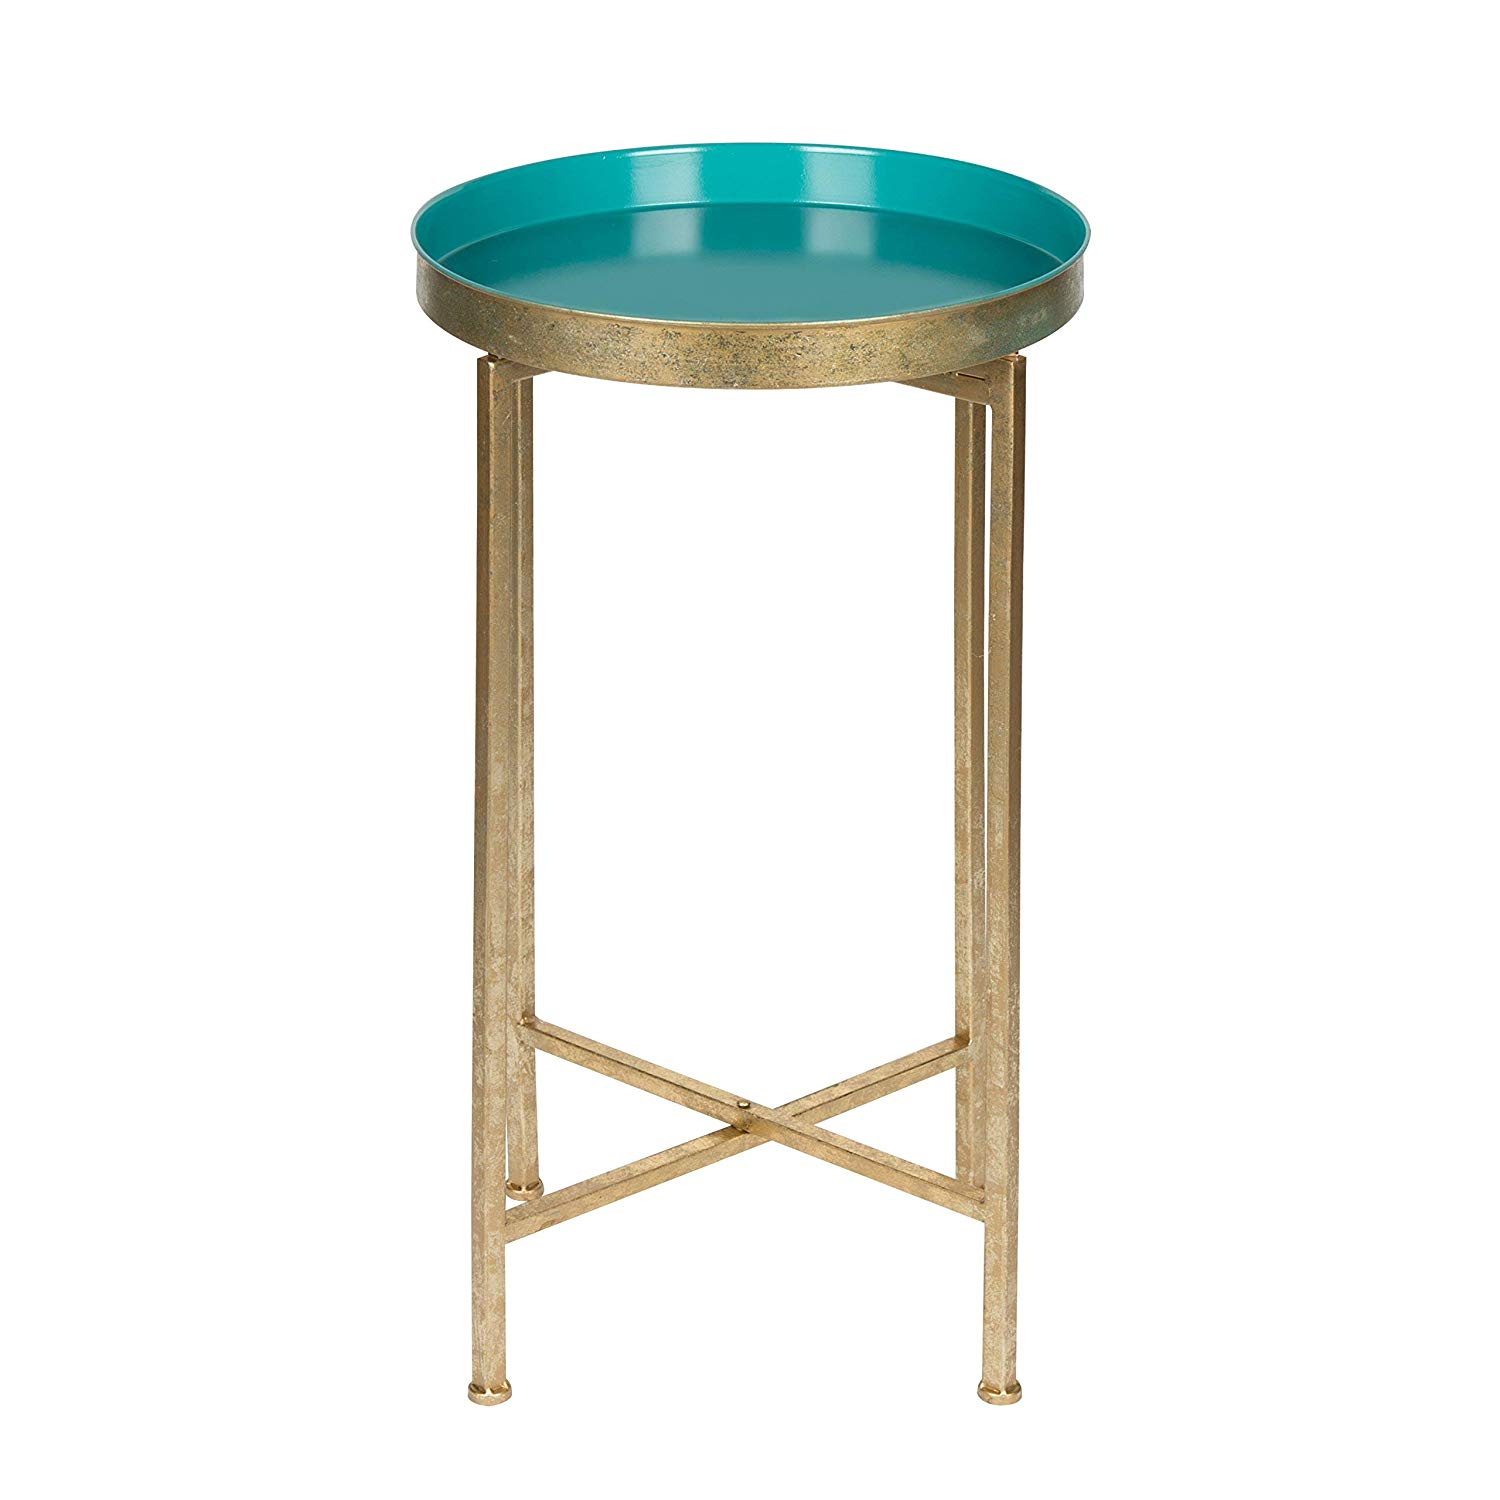 kate and laurel celia round metal foldable tray accent table teal gold kitchen dining lime green coffee outdoor ice cooler barn ikea storage shelves with bins clamp lamp jcp rugs